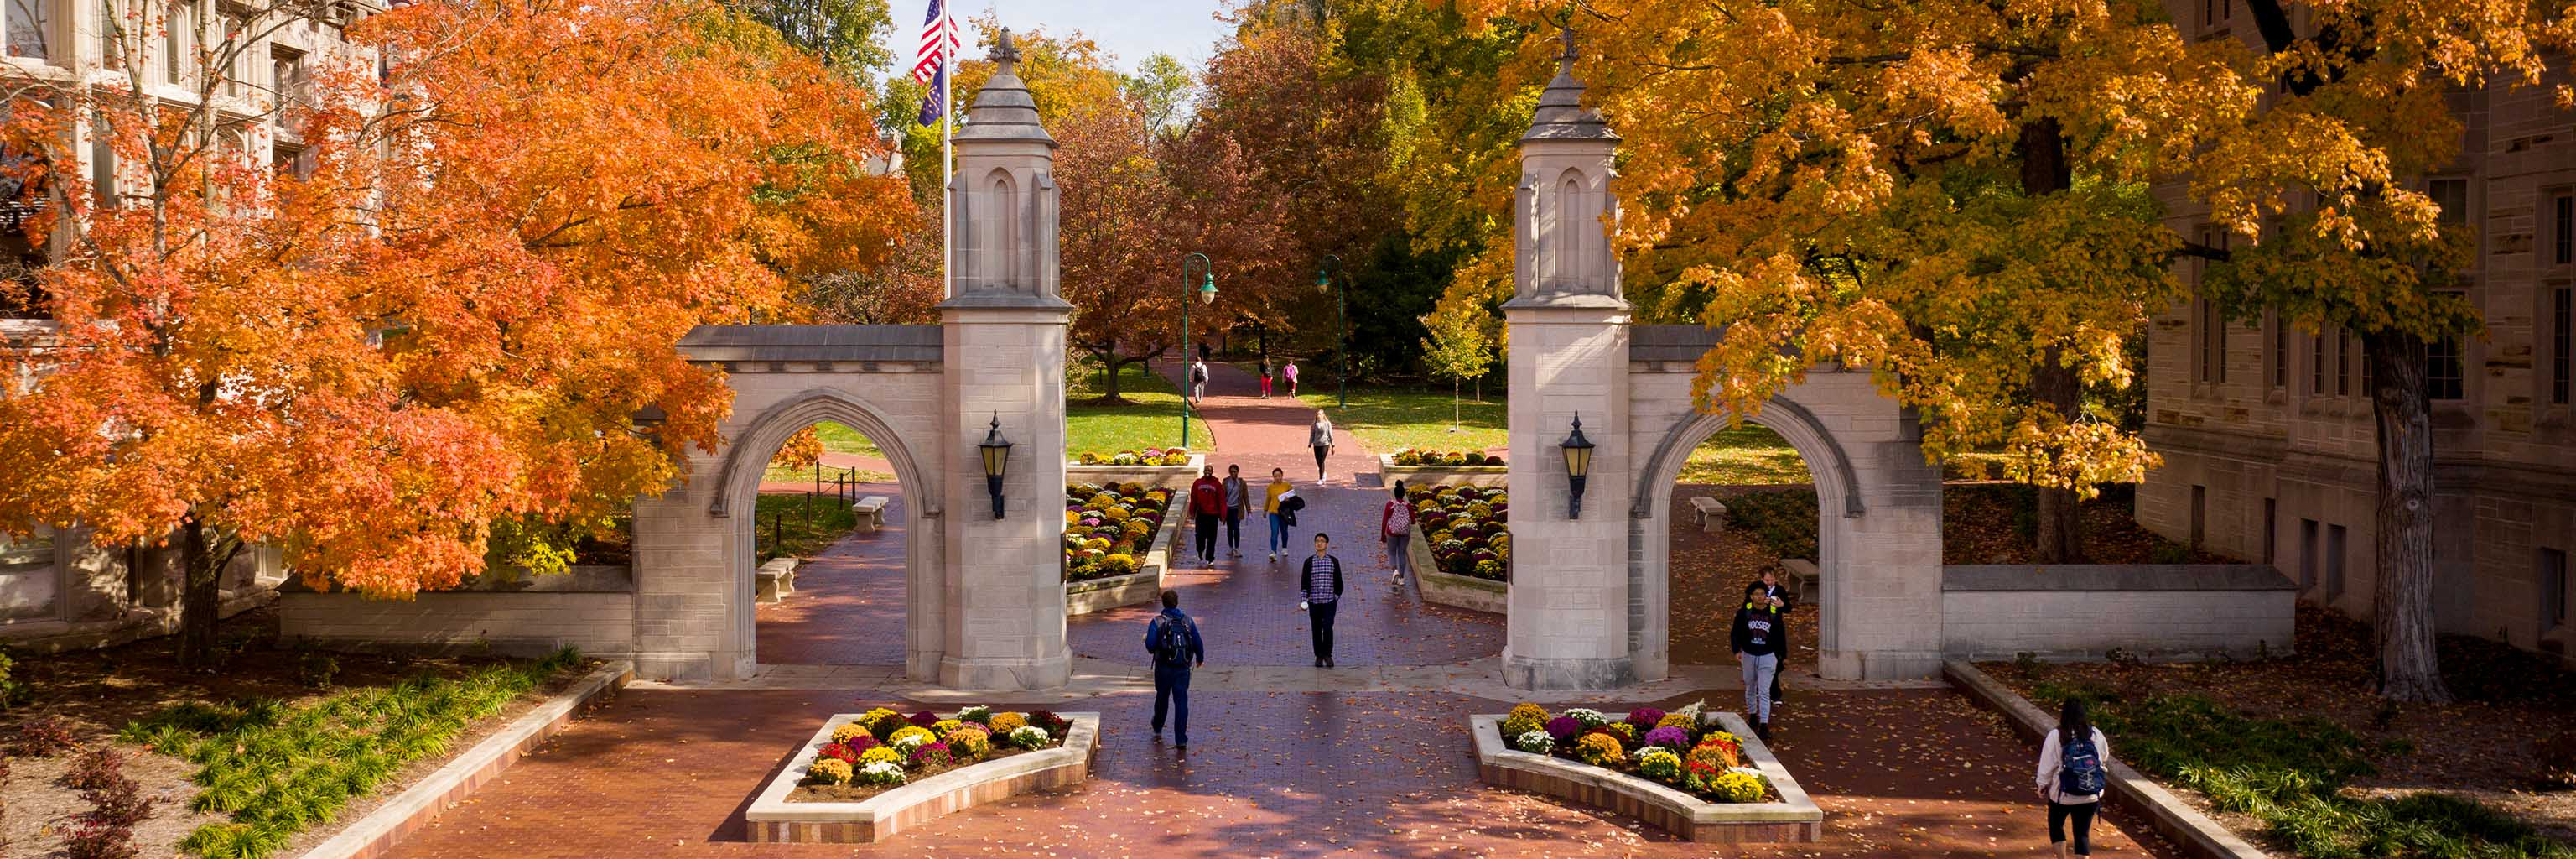 Sample Gates in the autumn